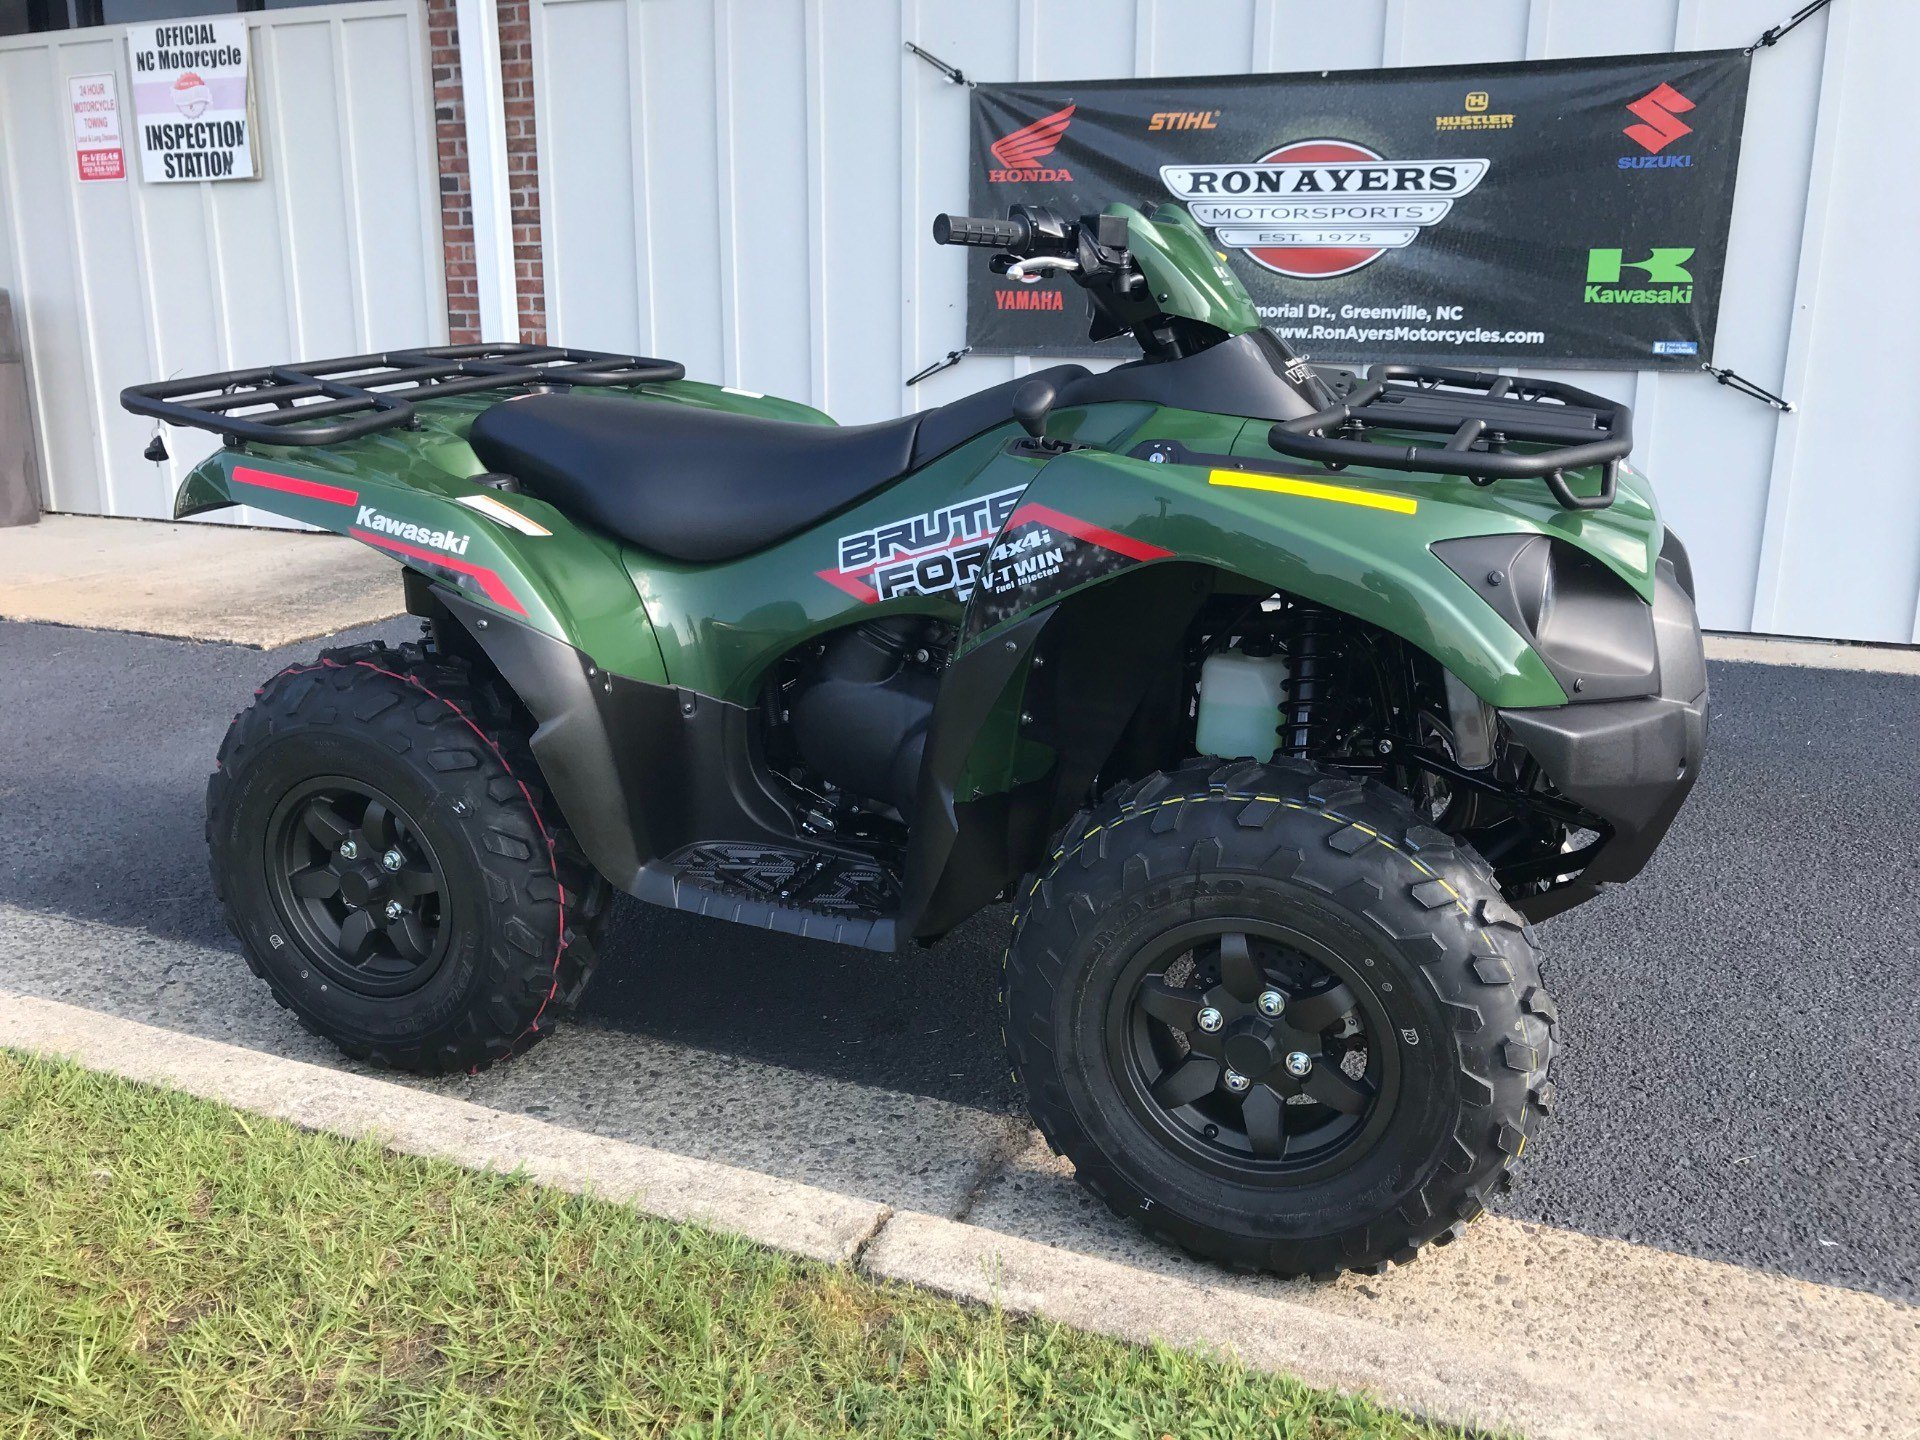 2019 Kawasaki Brute Force 750 4x4i in Greenville, North Carolina - Photo 2